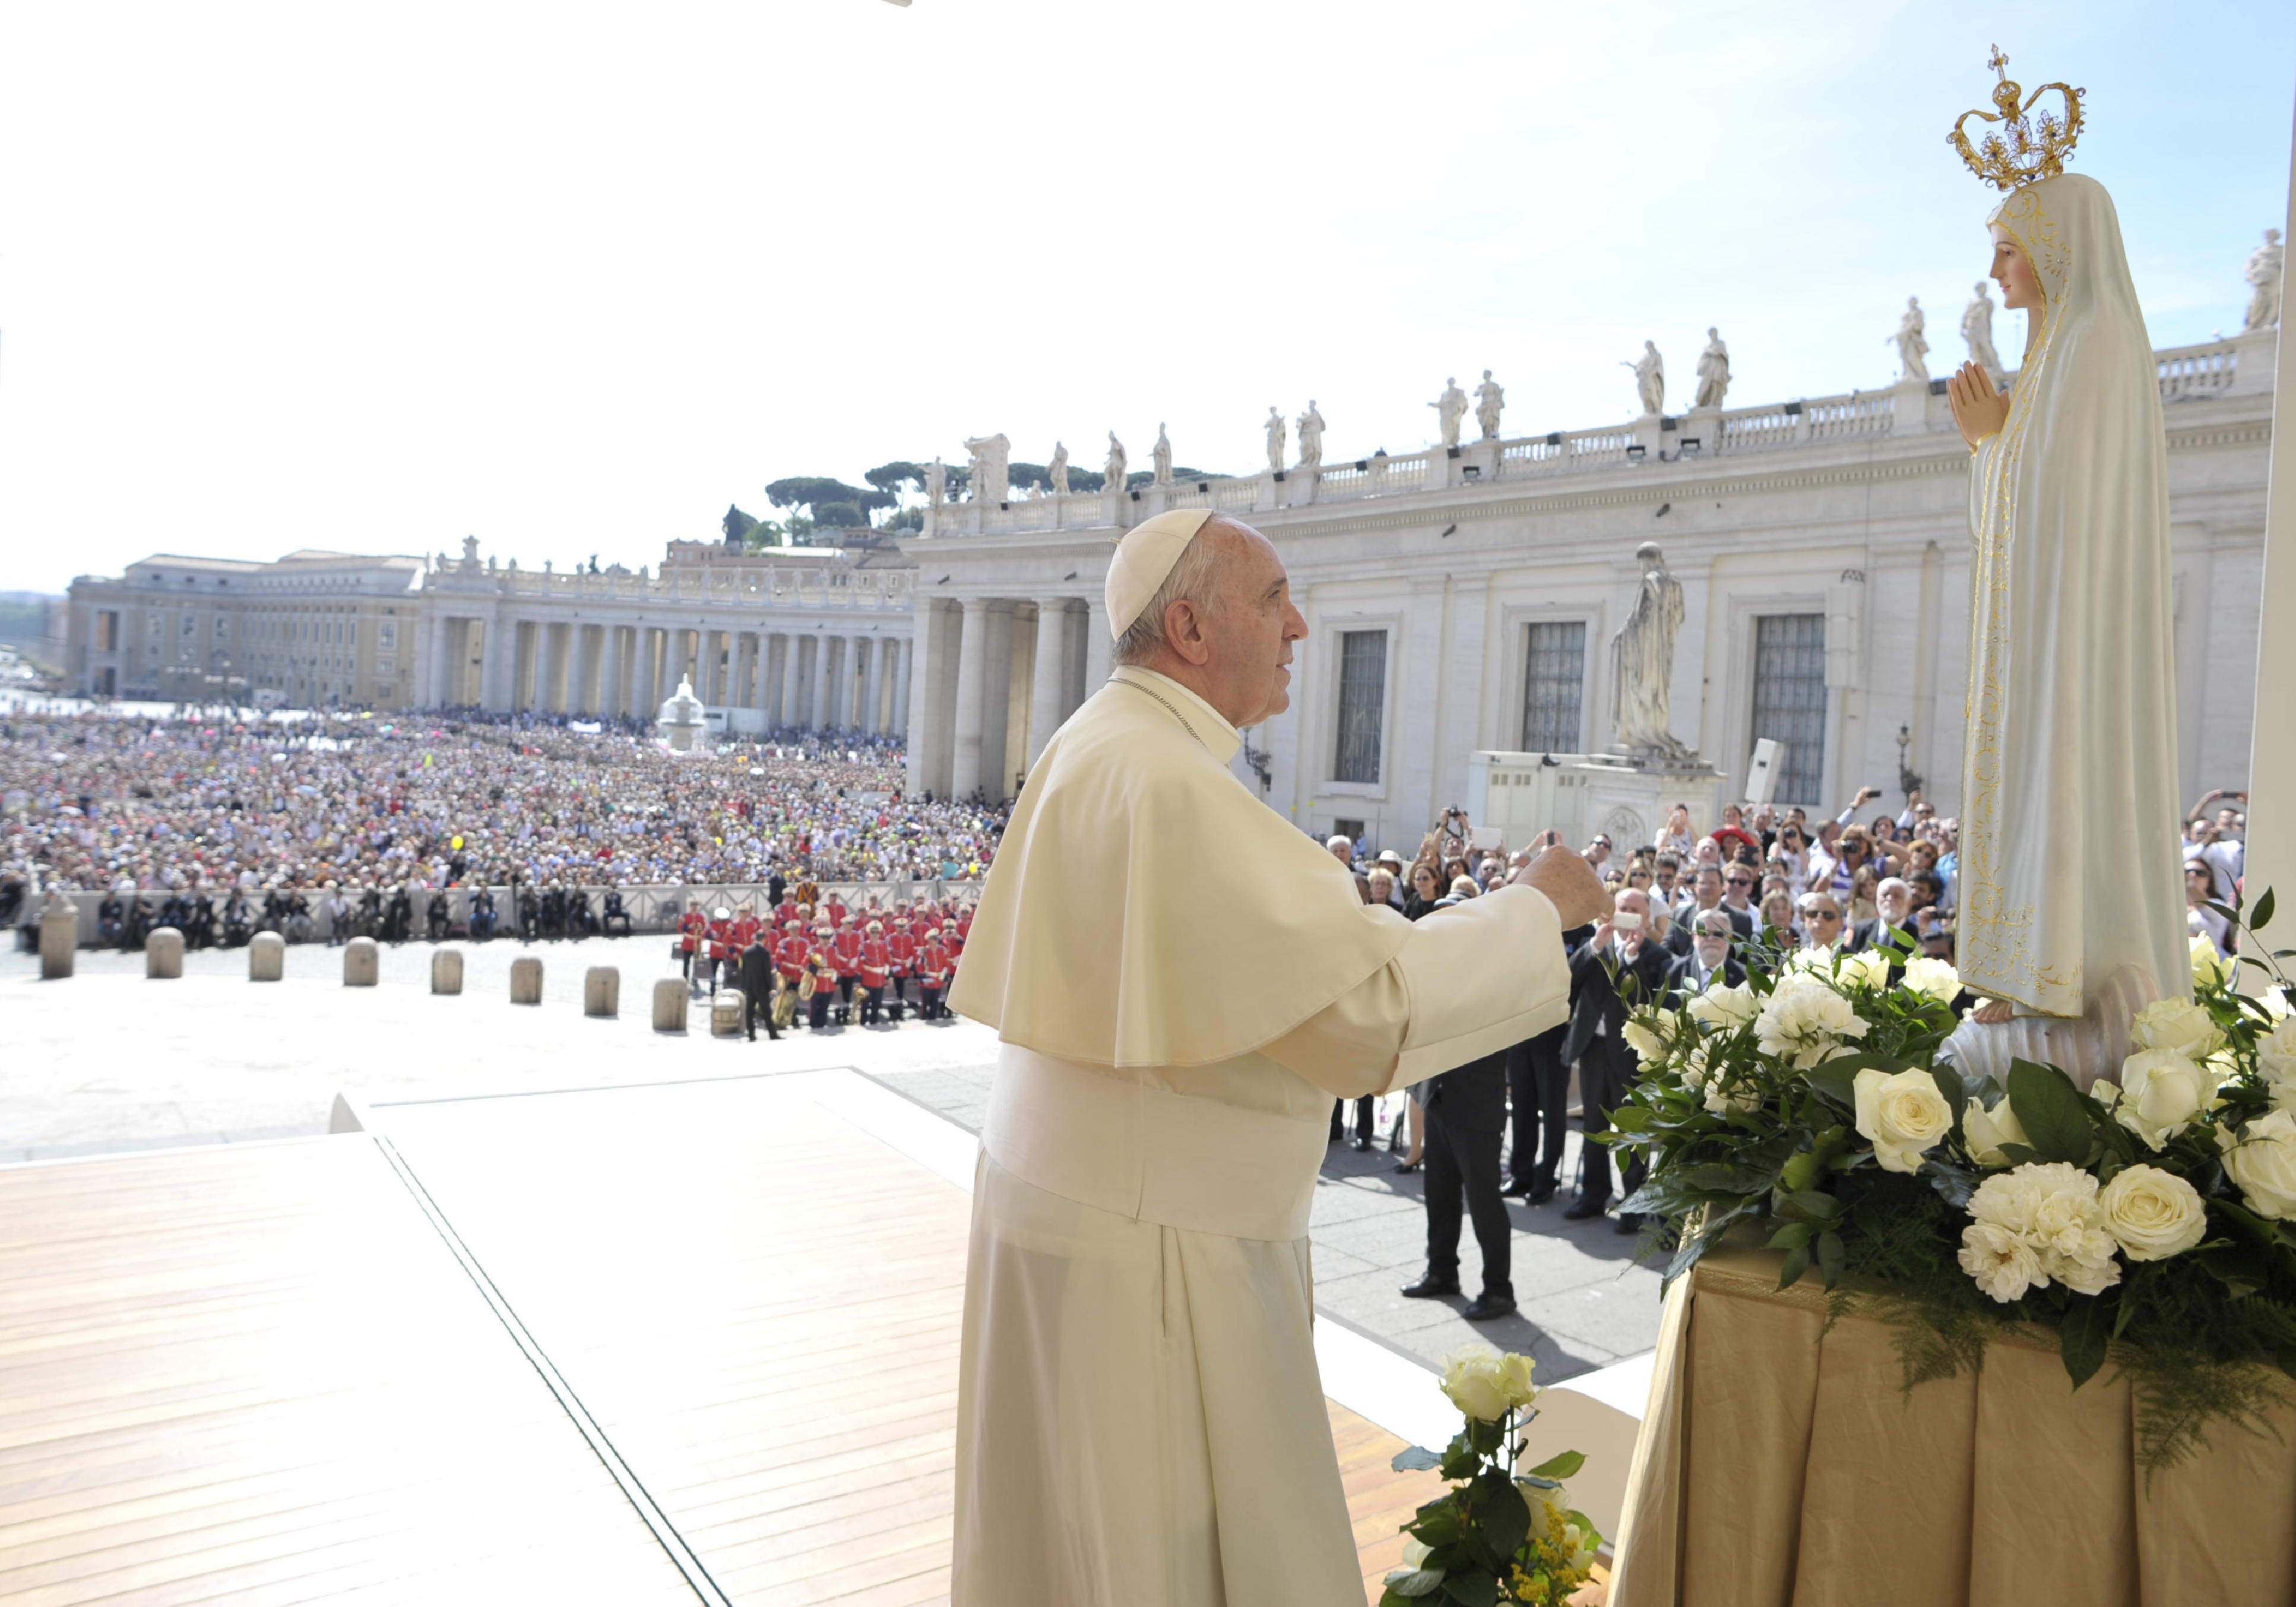 Pope Francis in front of a statue of Our Lady of Fatima during the General Audience of Wednesday 13th of May 2015